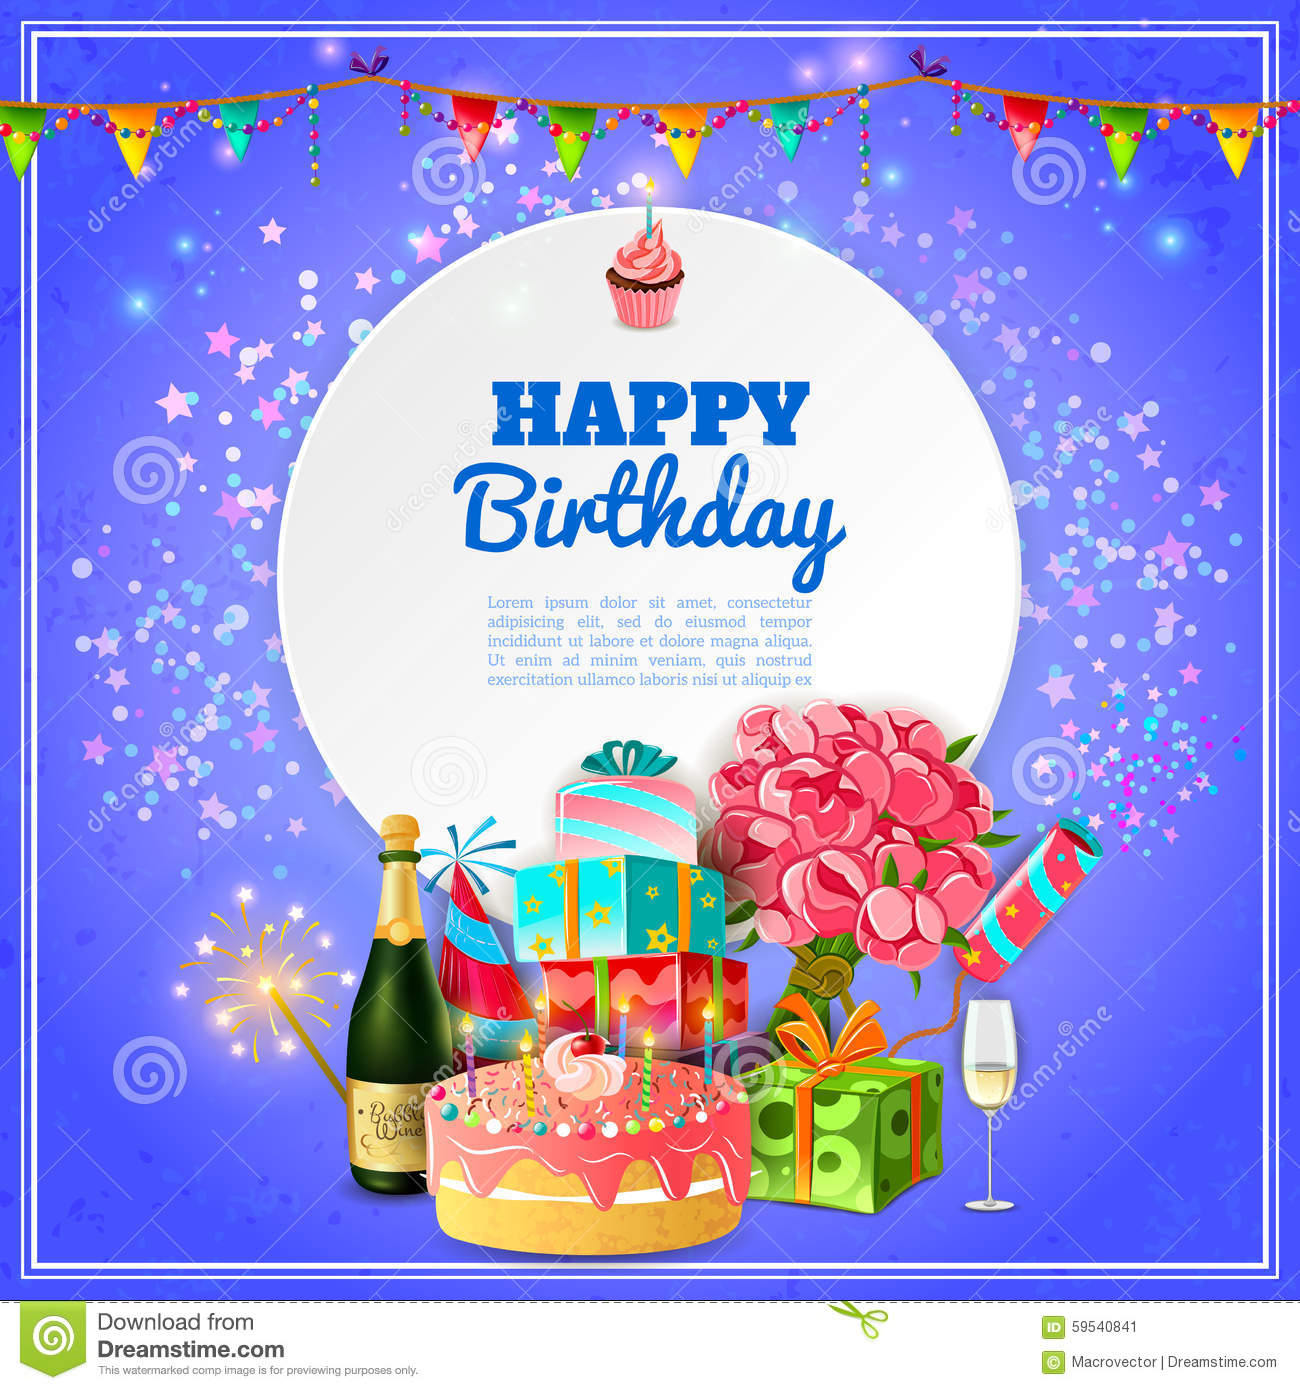 birthday poster background ; happy-birthday-party-background-poster-template-invitation-card-cake-champagne-decorations-abstract-vector-59540841